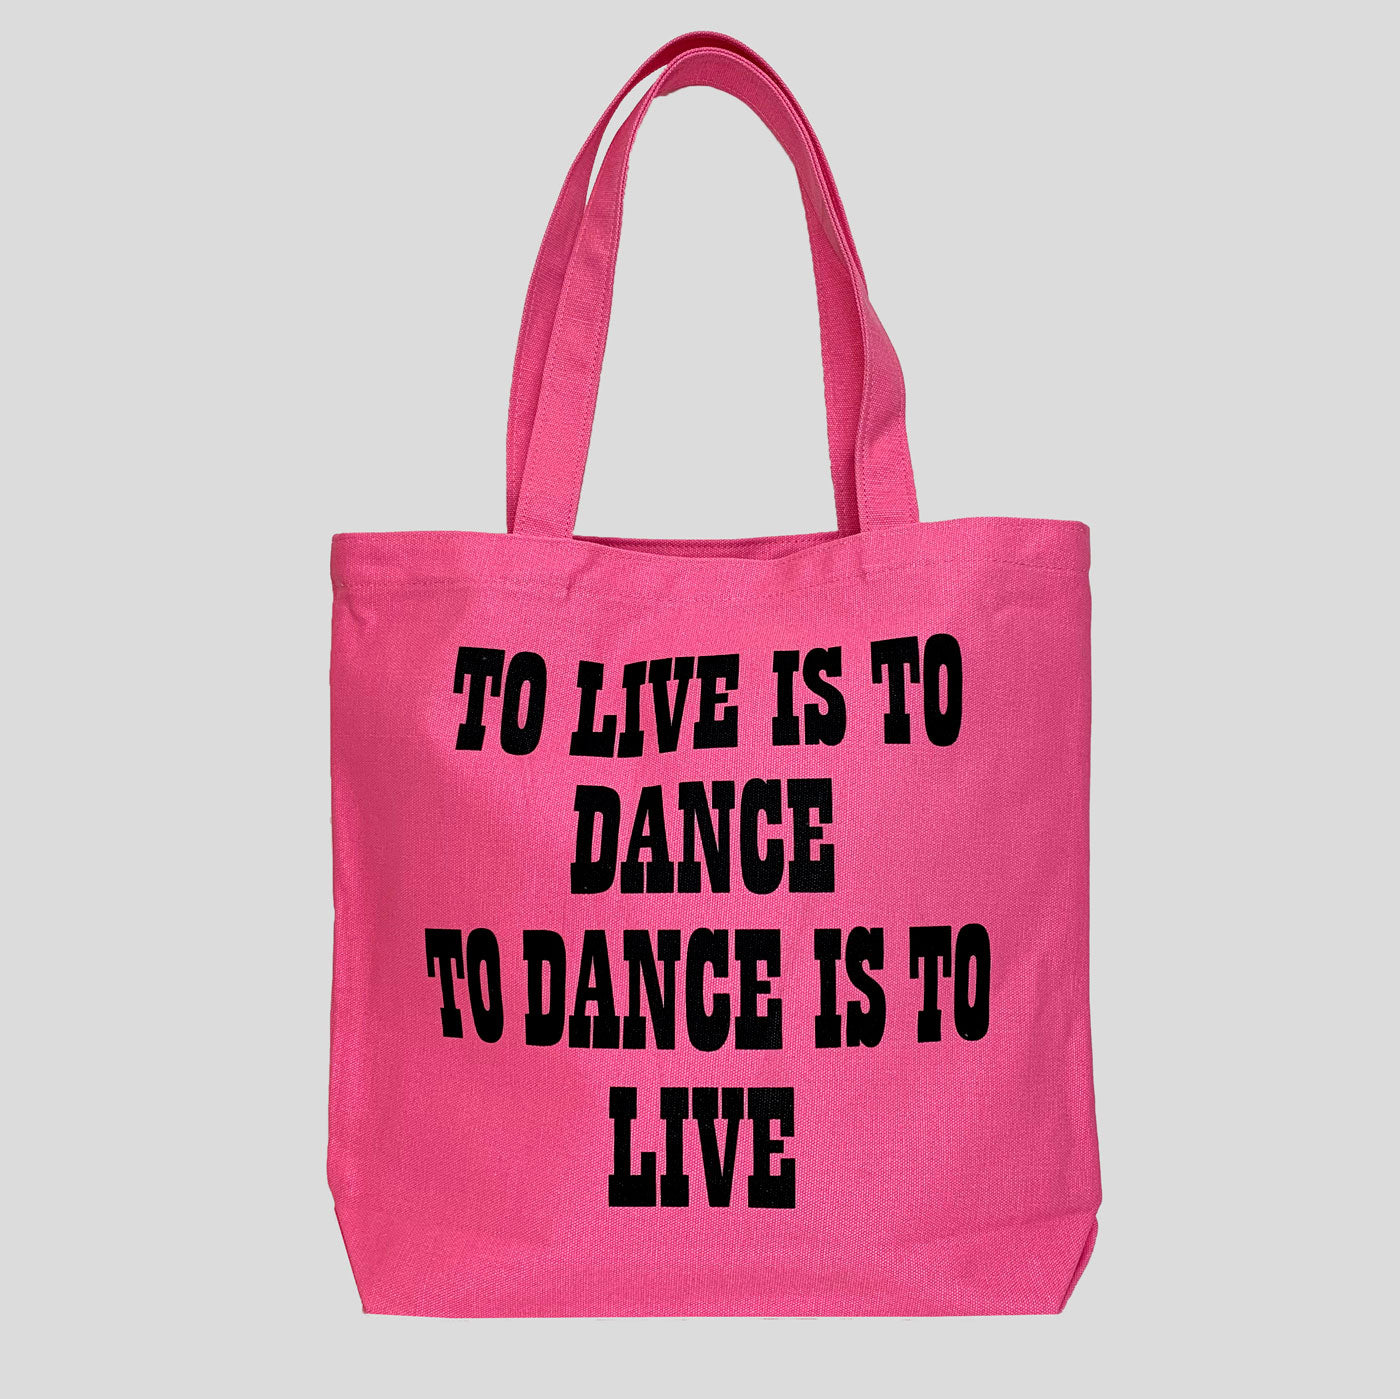 Peanuts Tote - To Dance Is To Live